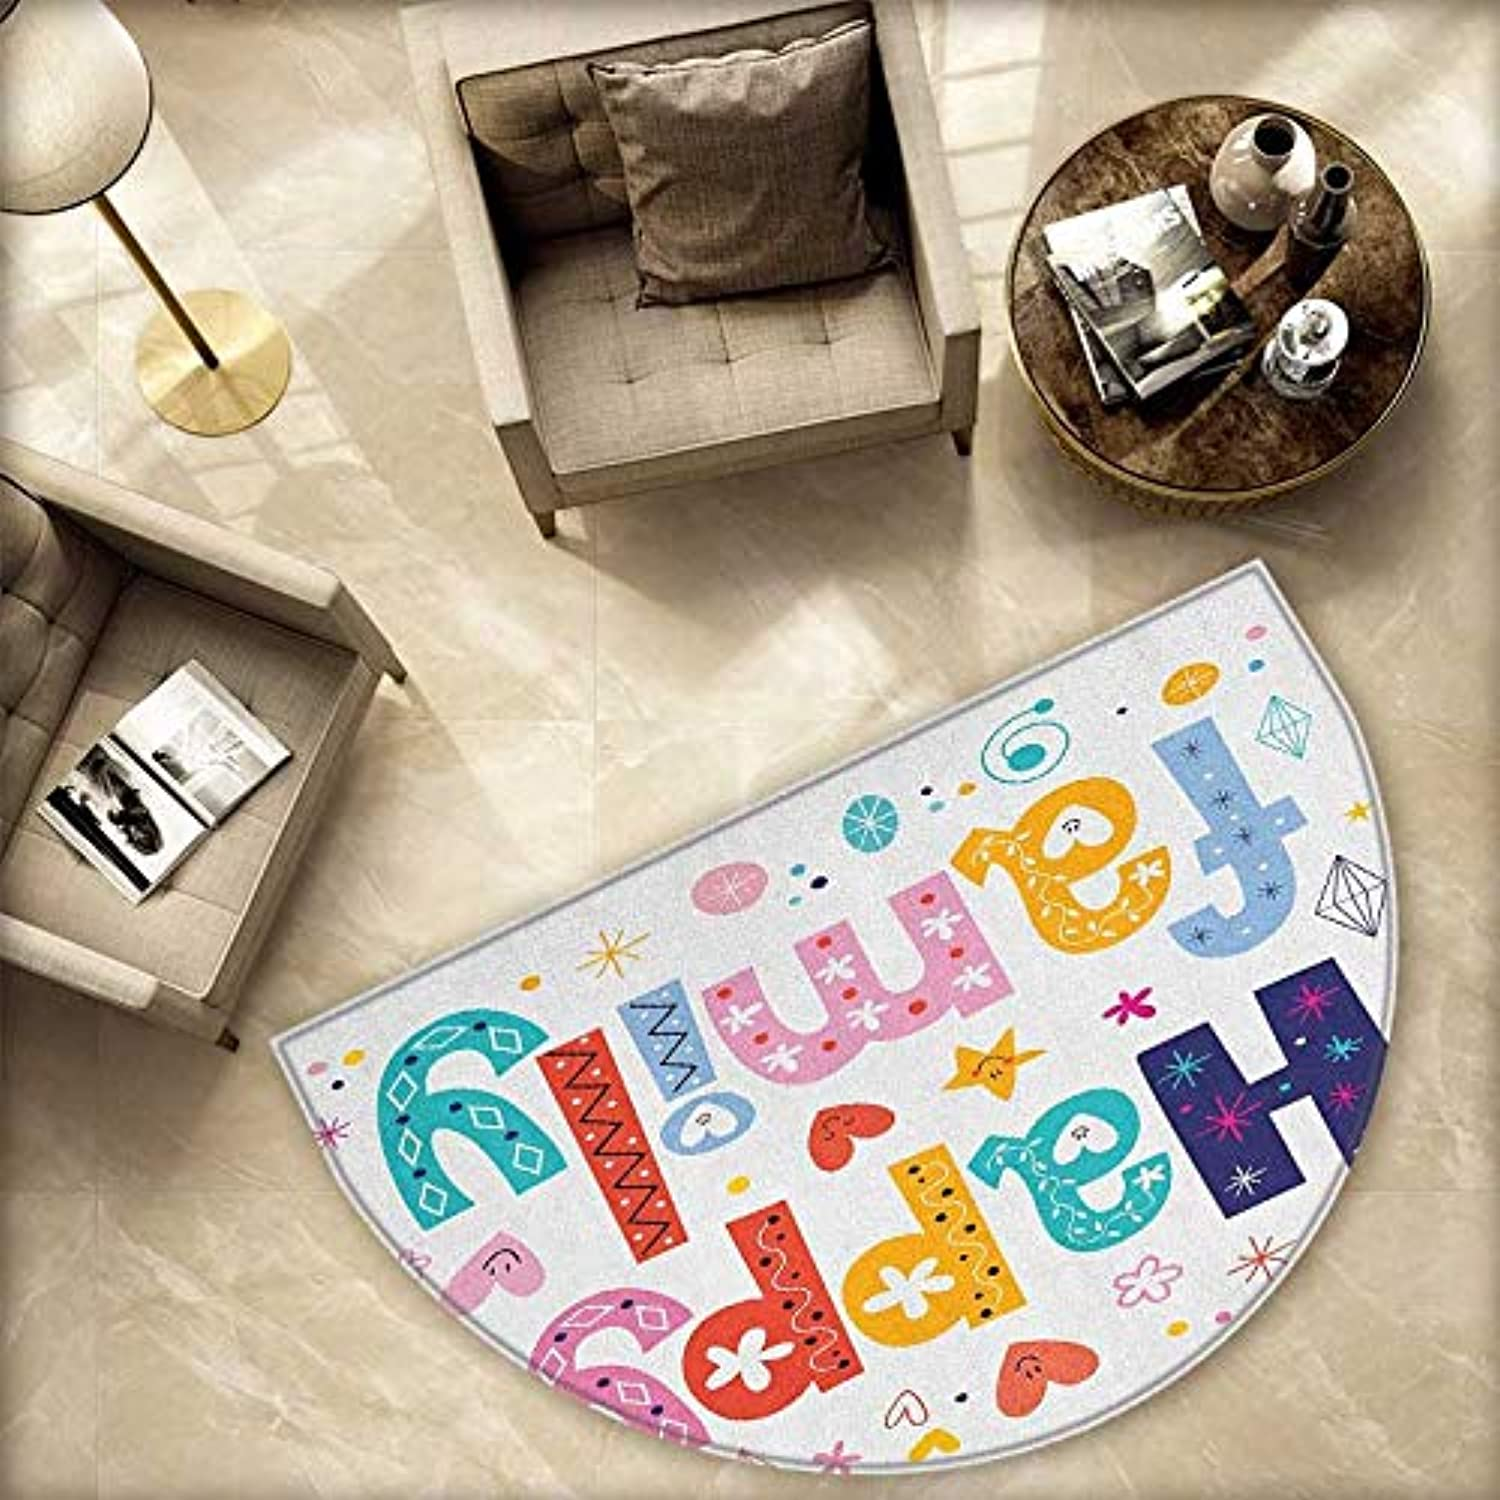 Family Semicircle Doormat Happy Family Letters with Flowers Hearts Stars Dots Circles Cartoon Like Artwork Halfmoon doormats H 78.7  xD 118.1  Multicolor